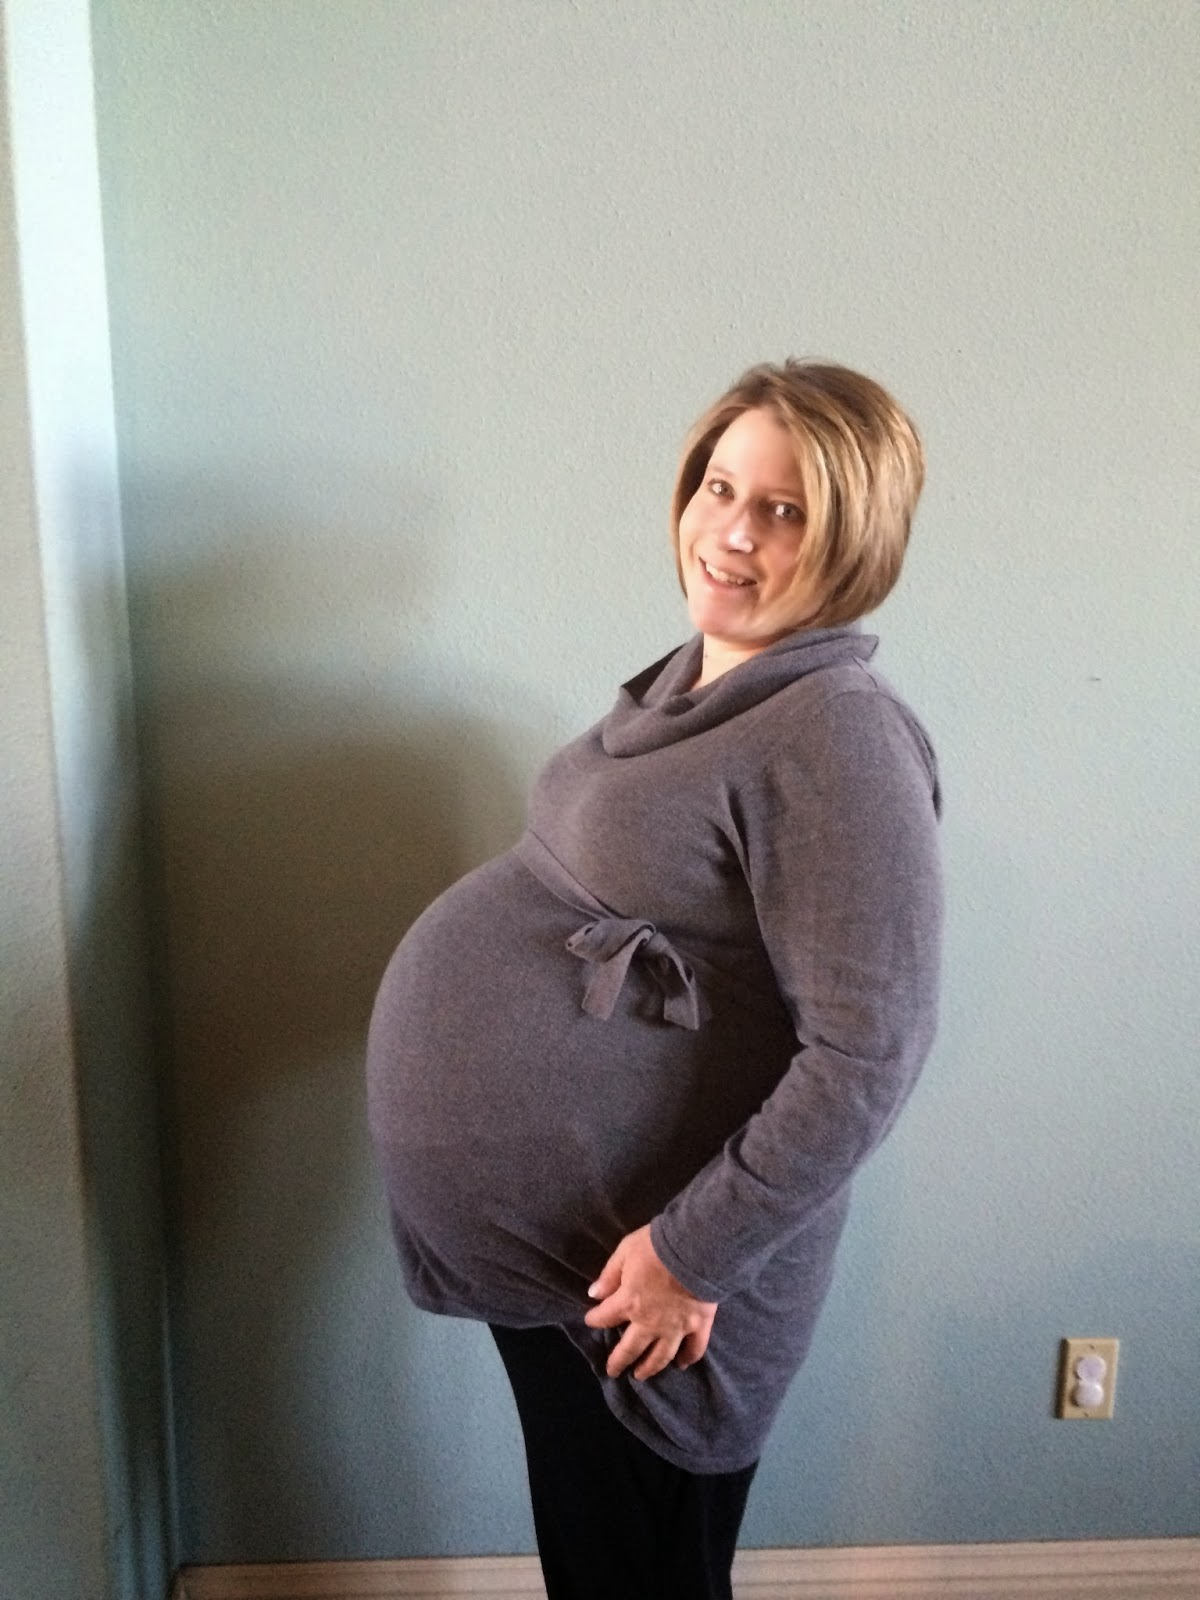 Baby Born At 25 Weeks: TWINS : End Of Pregnancy Pictures @ 35 Weeks